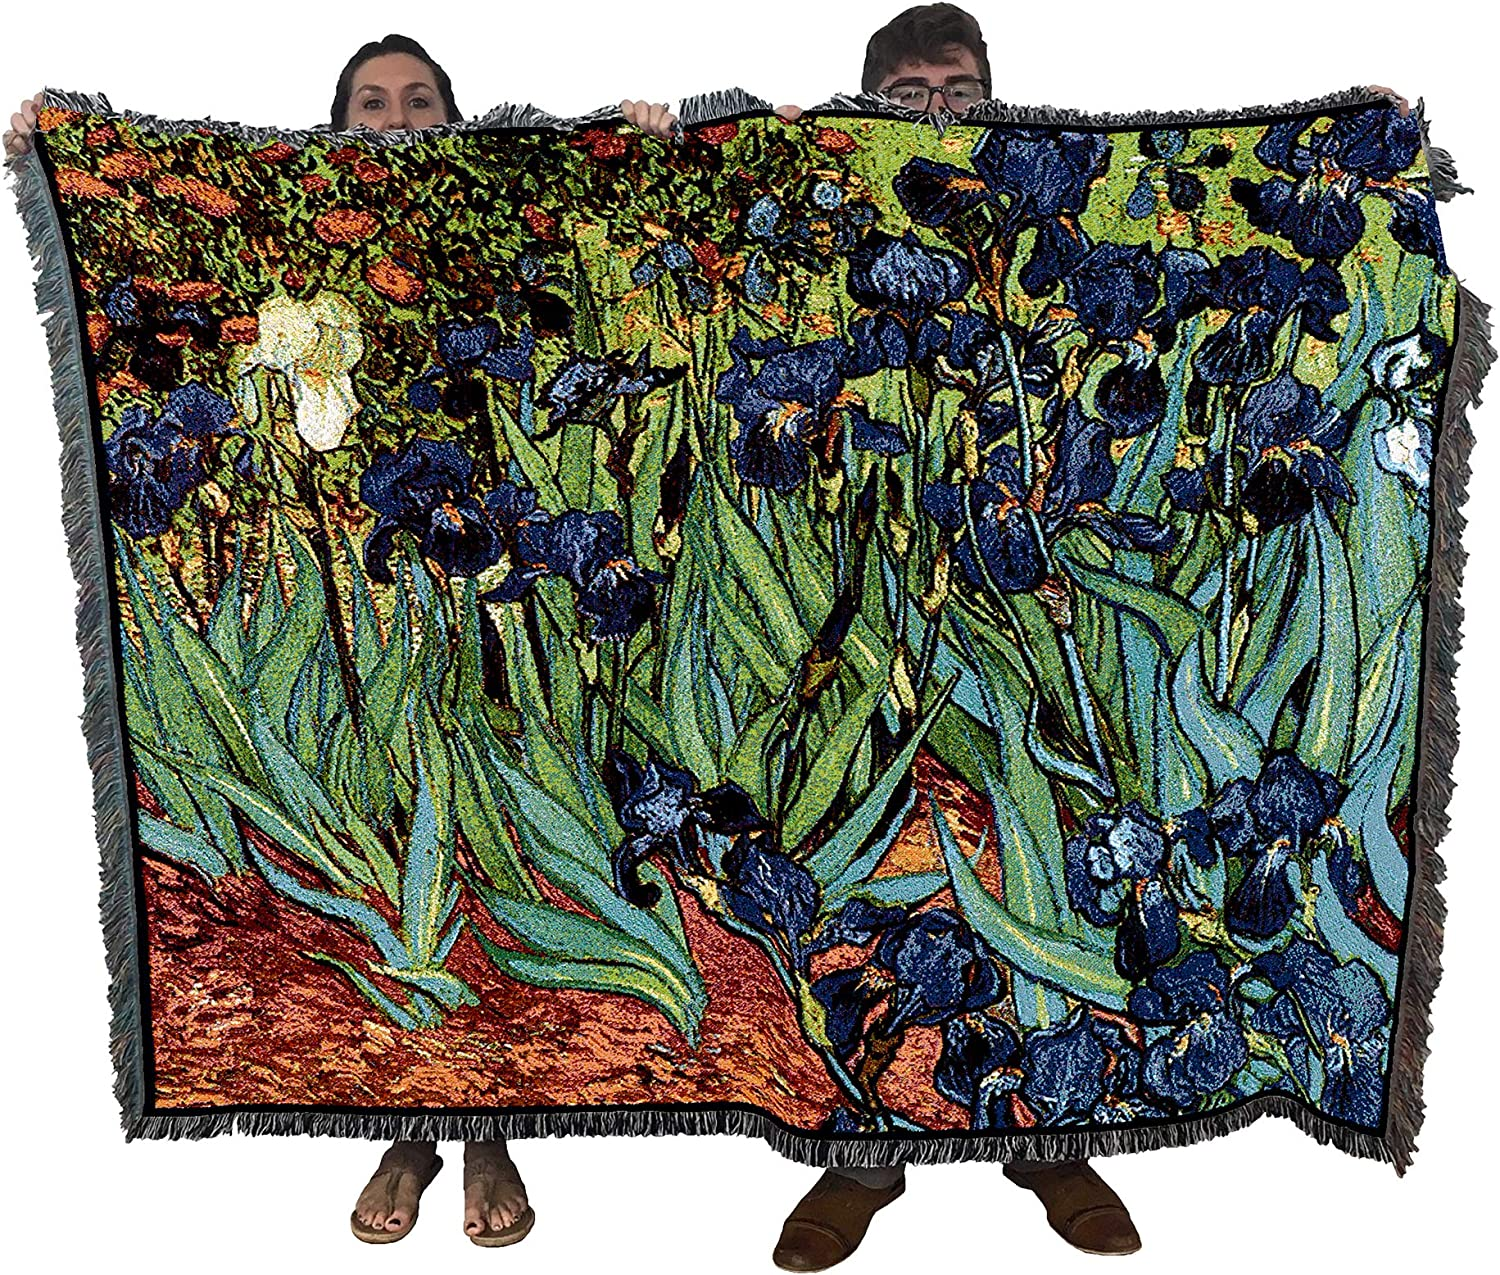 Pure Country Weavers Irises by Vincent Van Gogh Blanket Throw Woven from Cotton - Made in The USA (72x54)